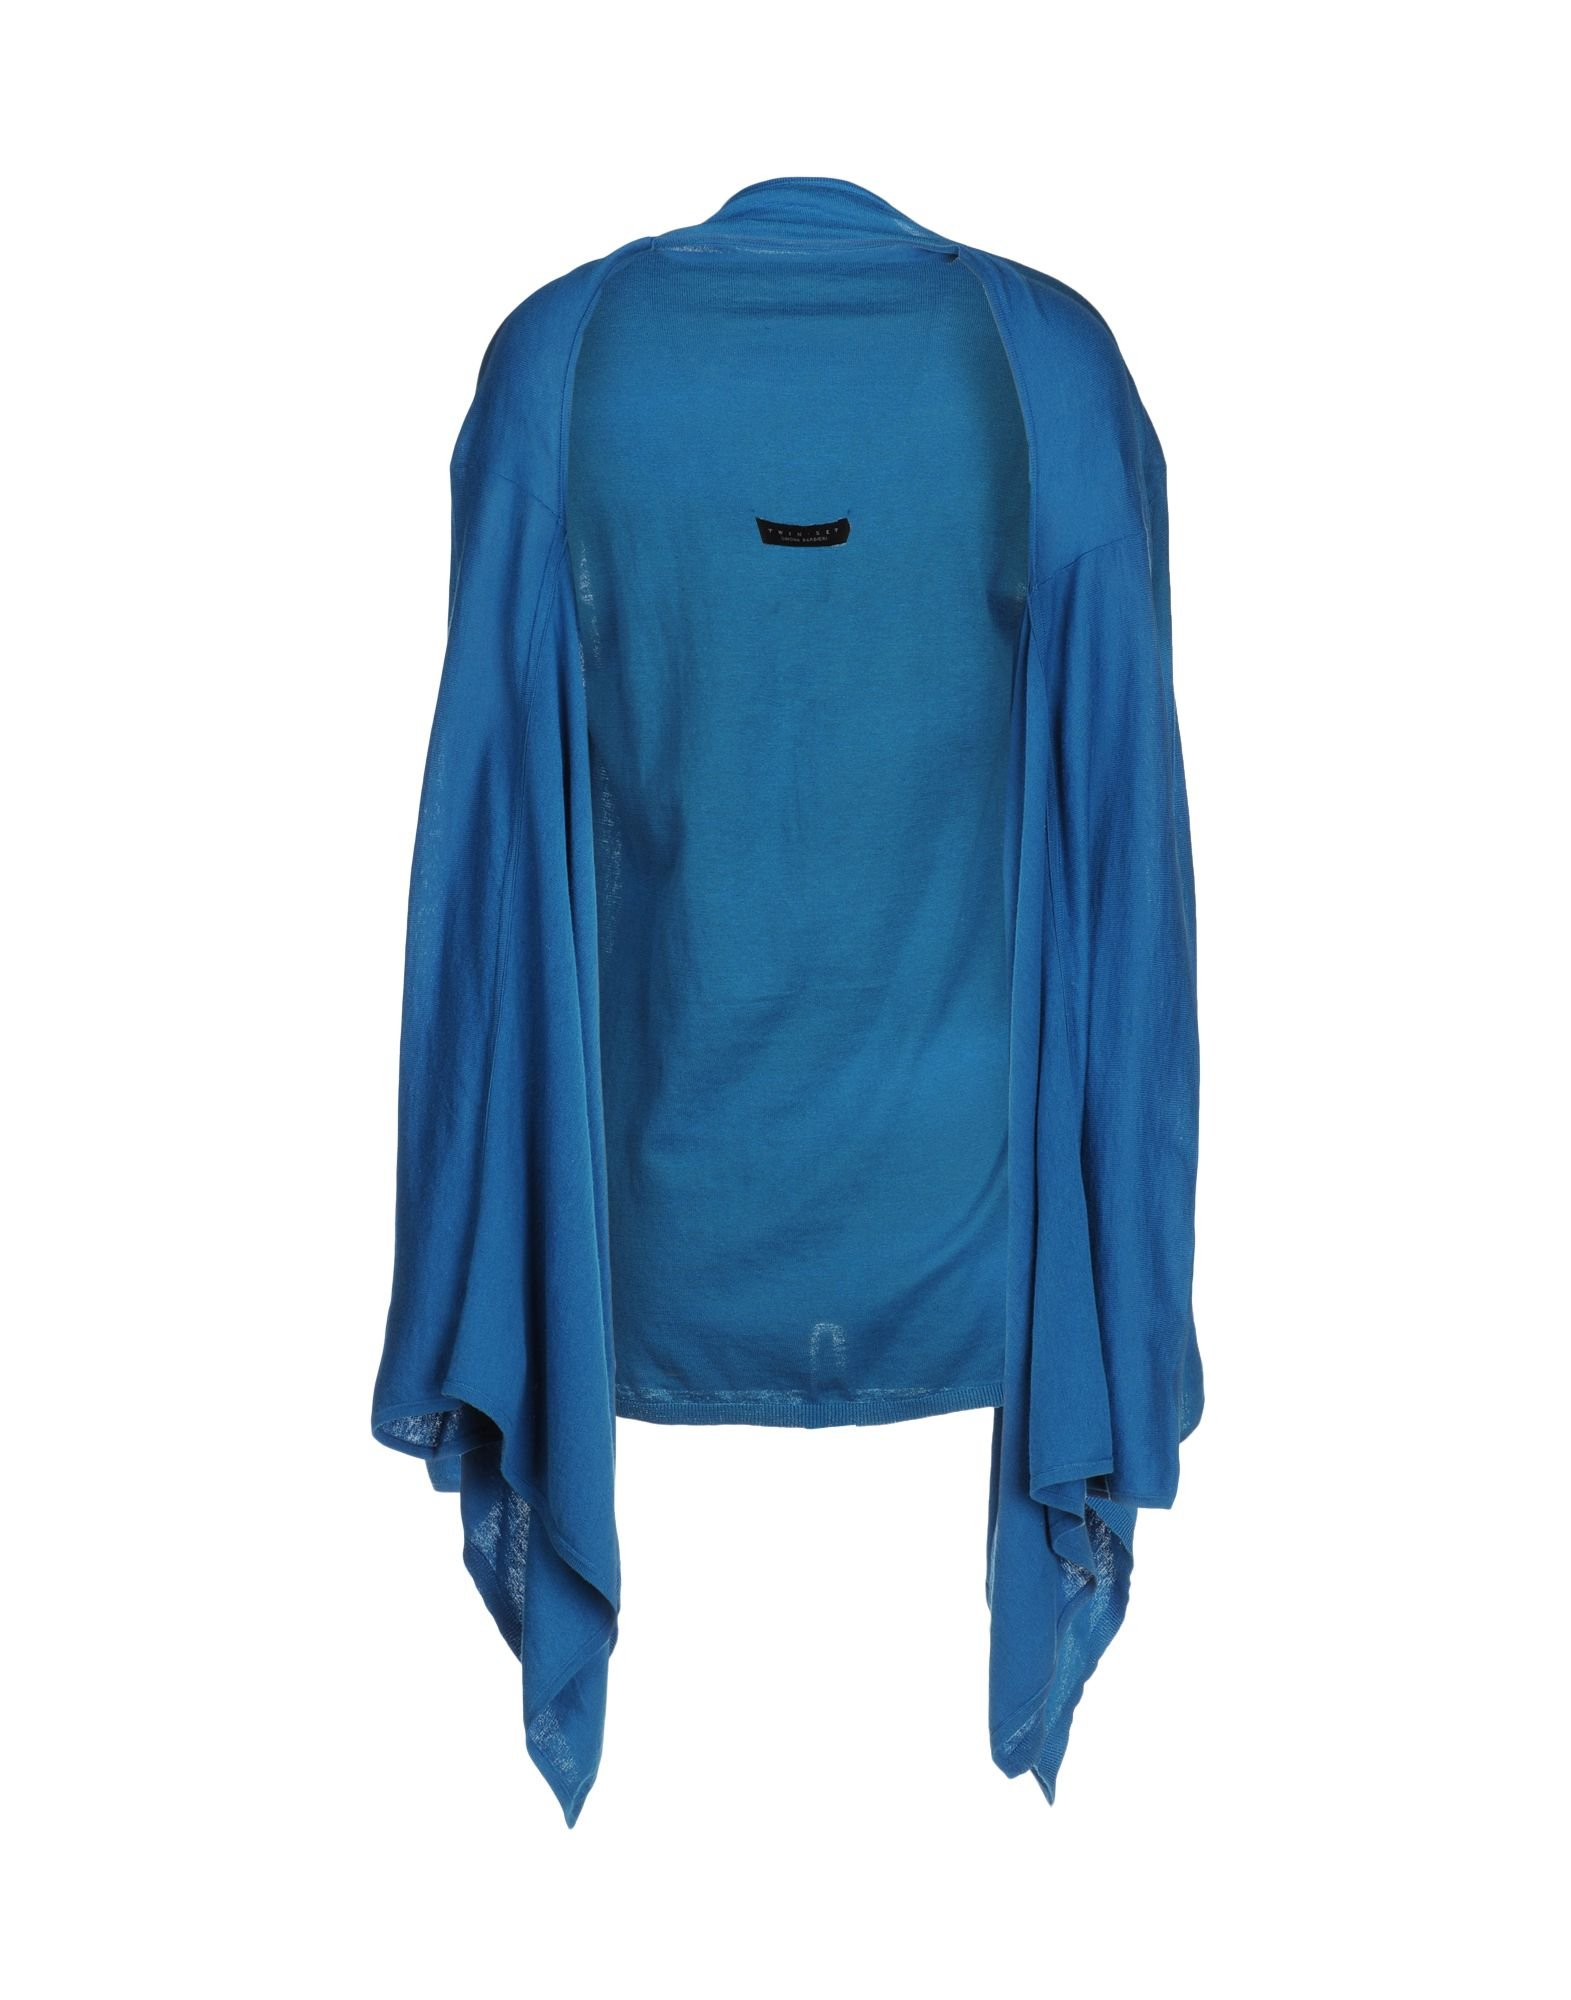 Buy women's cardigans online at smileqbl.gq Shop fashion cardigans for women with wholesale price and fast delivery now.